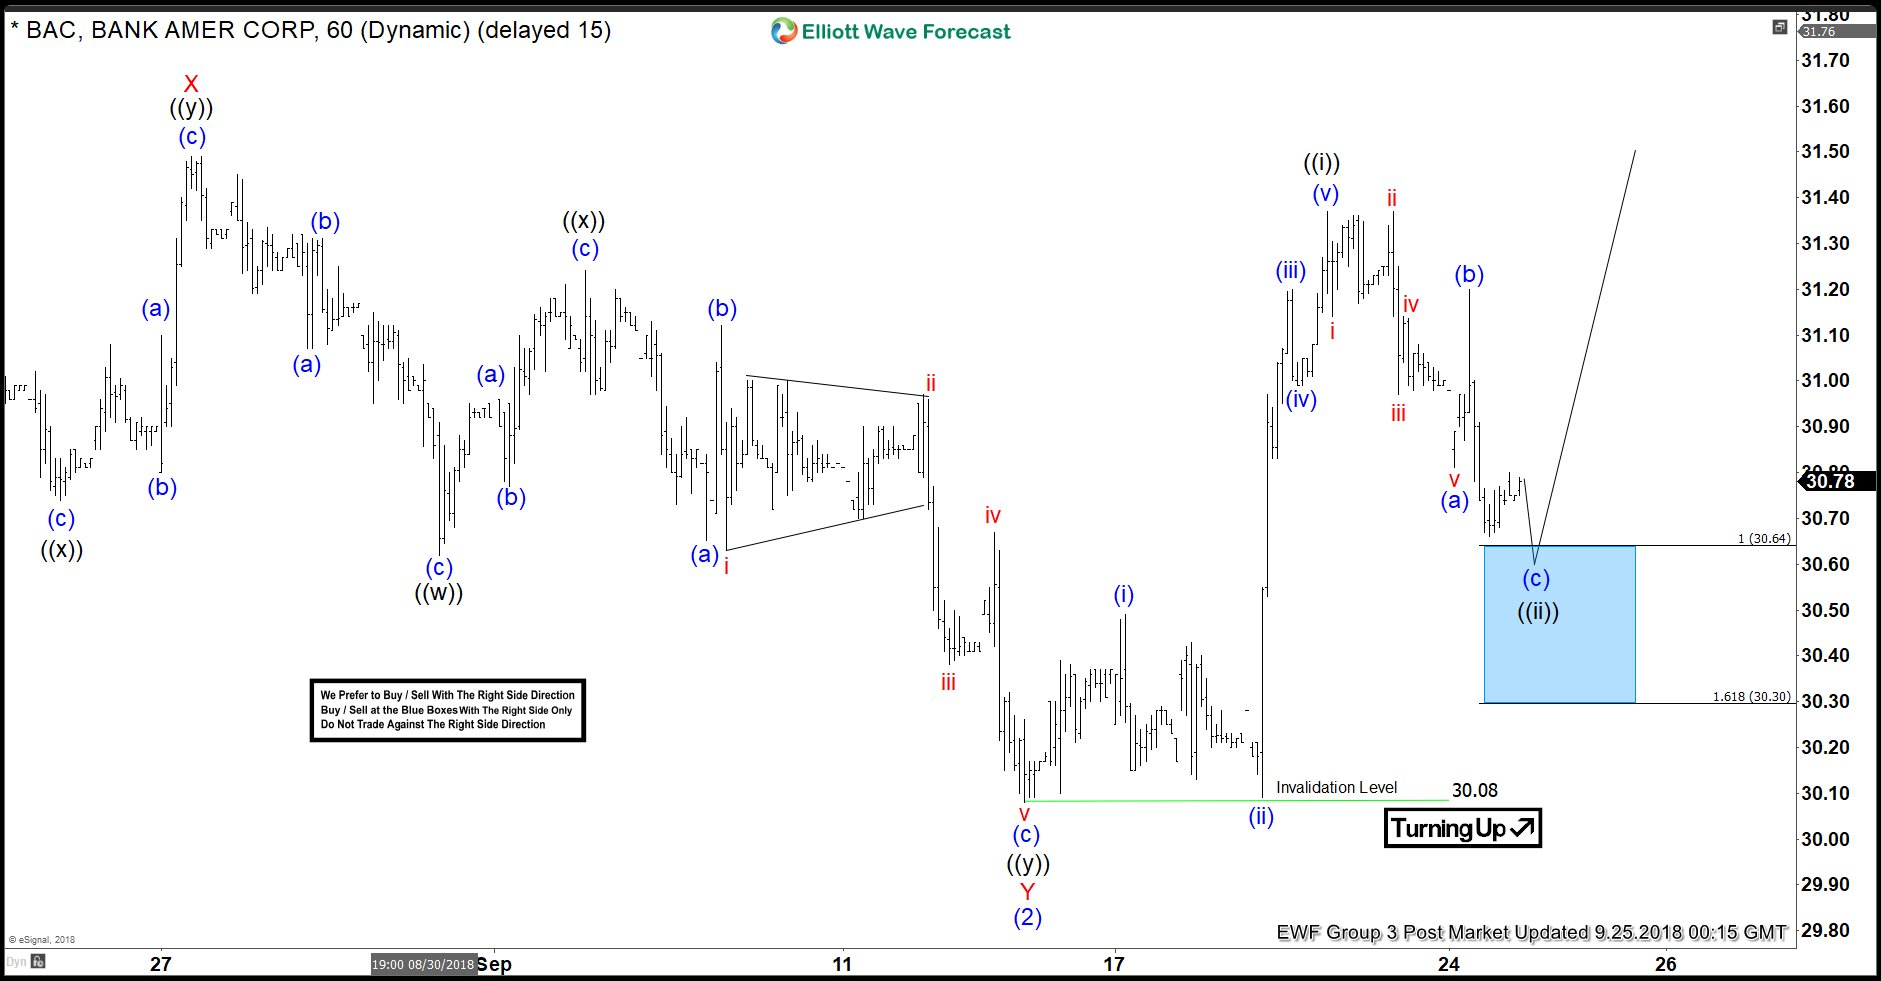 BAC Elliott Wave View: Ready To Resume Higher?